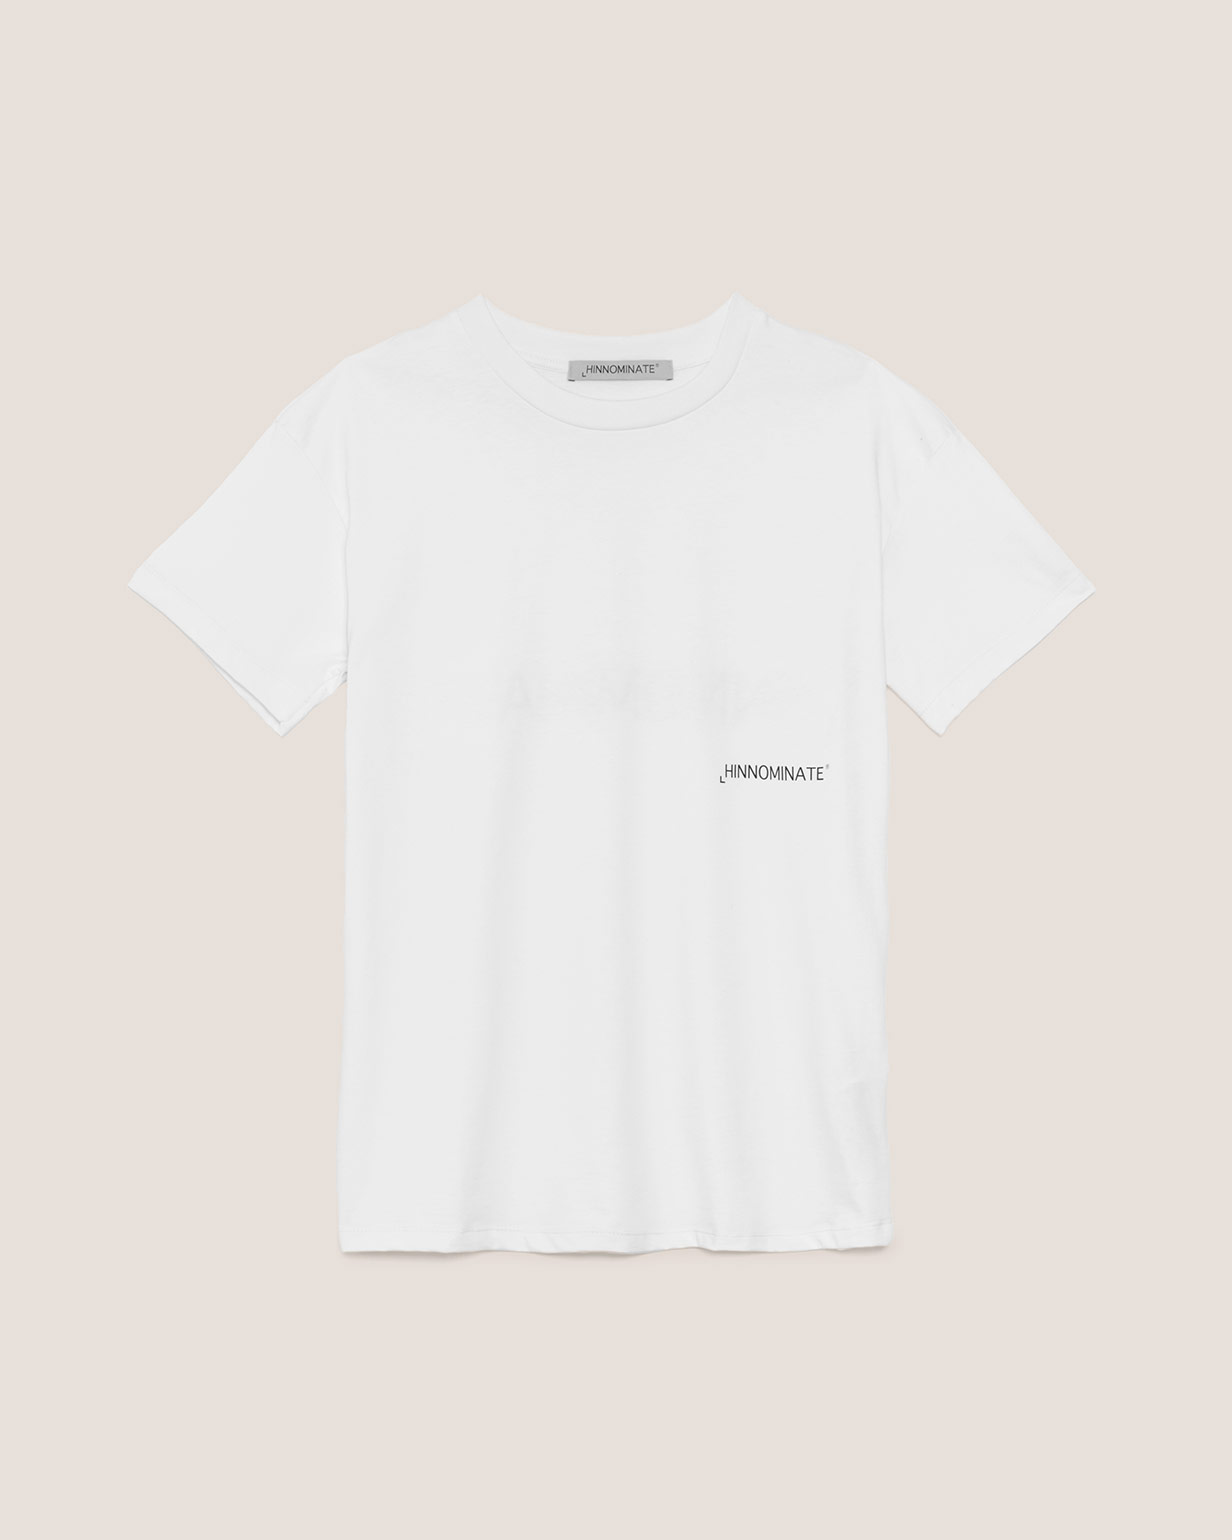 T-SHIRT - HNMSTMM19 - HINNOMINATE